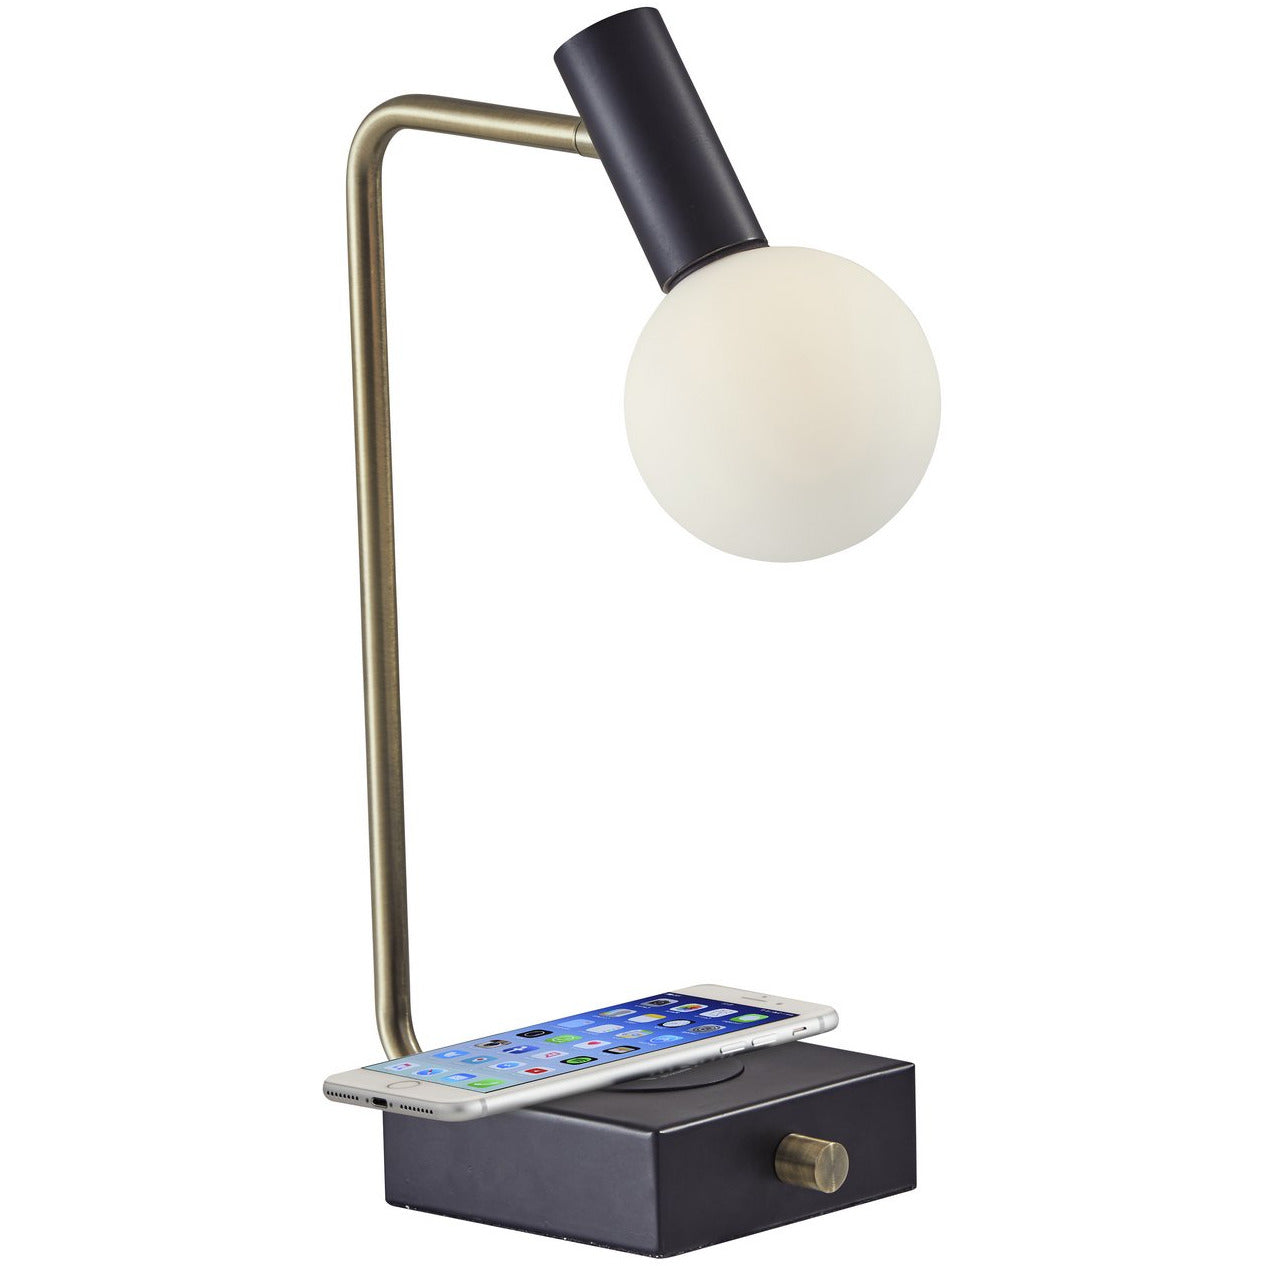 Adesso Home - 3214-01 - LED Table Lamp - Windsor - Matte Black w. Antique Brass Accents